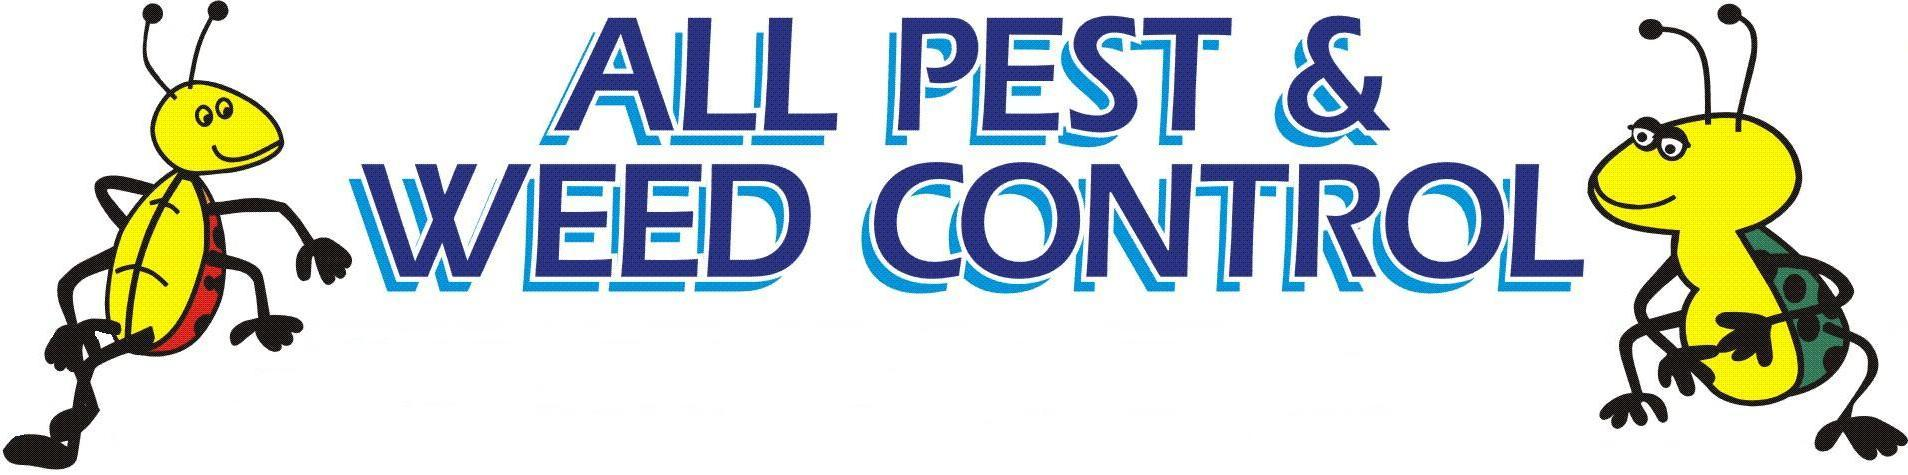 PEST CONTROL TERMITE TECHNICIAN